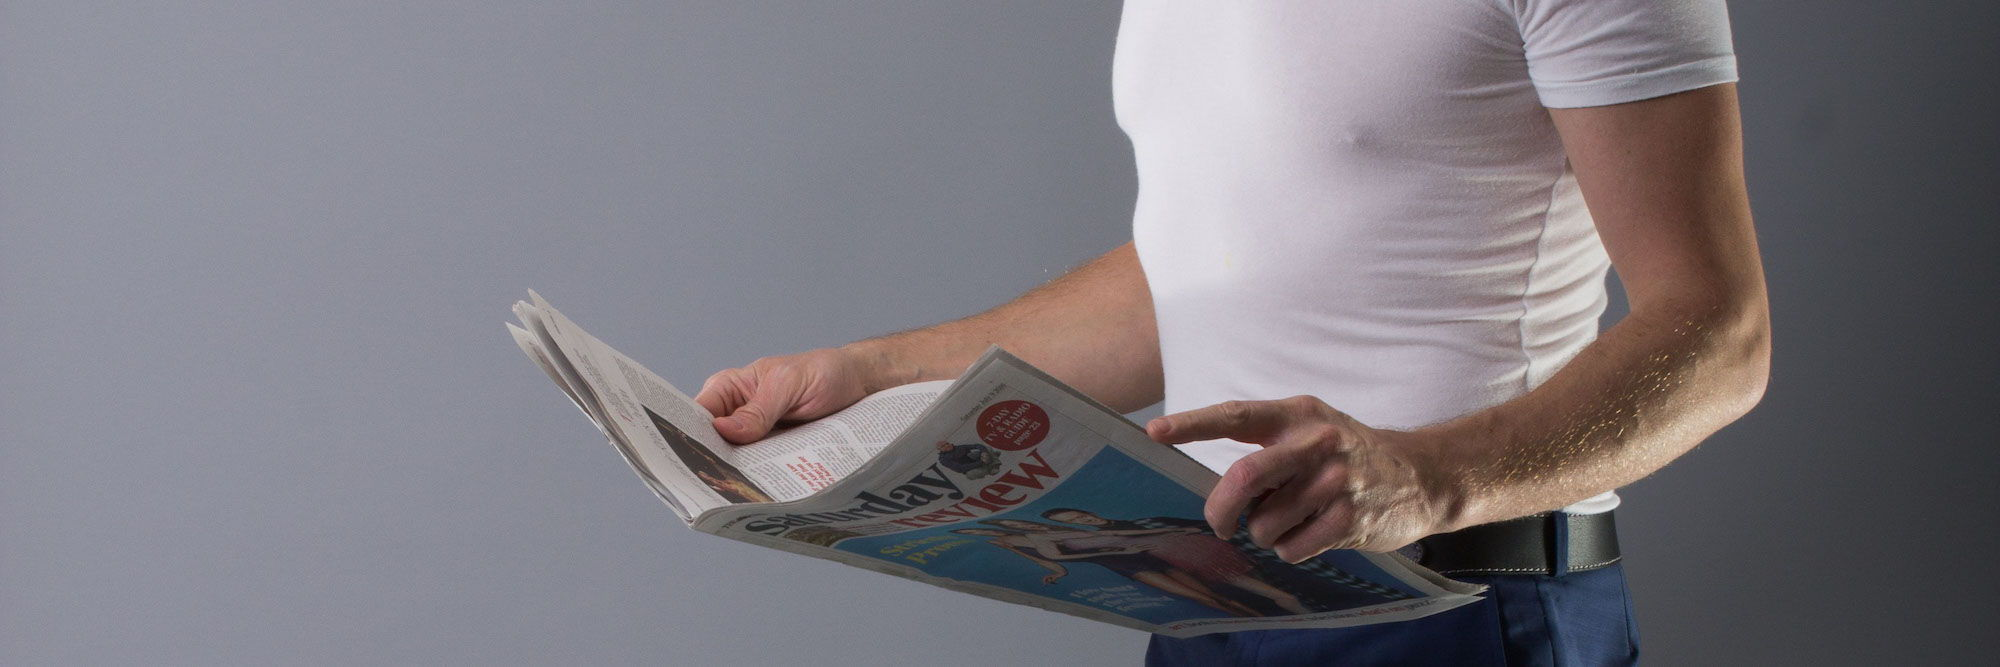 Image of a man wearing an undershirt whilst reading a newspaper